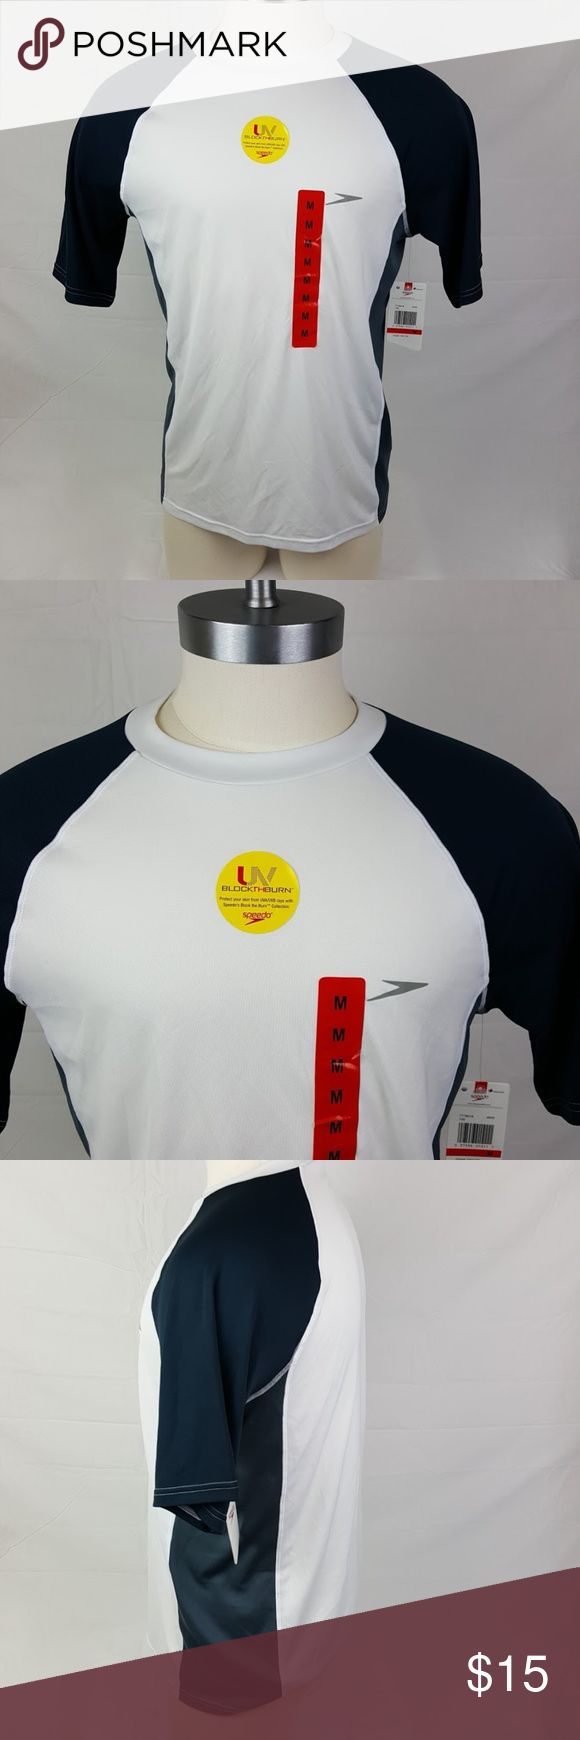 """Speedo Men's UVA/UVB Rays Protection Shirt NWT 100% Polyester, sport material Brand new with tags 28"""" long 21.5"""" Chest  Bin F7 Speedo Shirts Tees - Short Sleeve"""